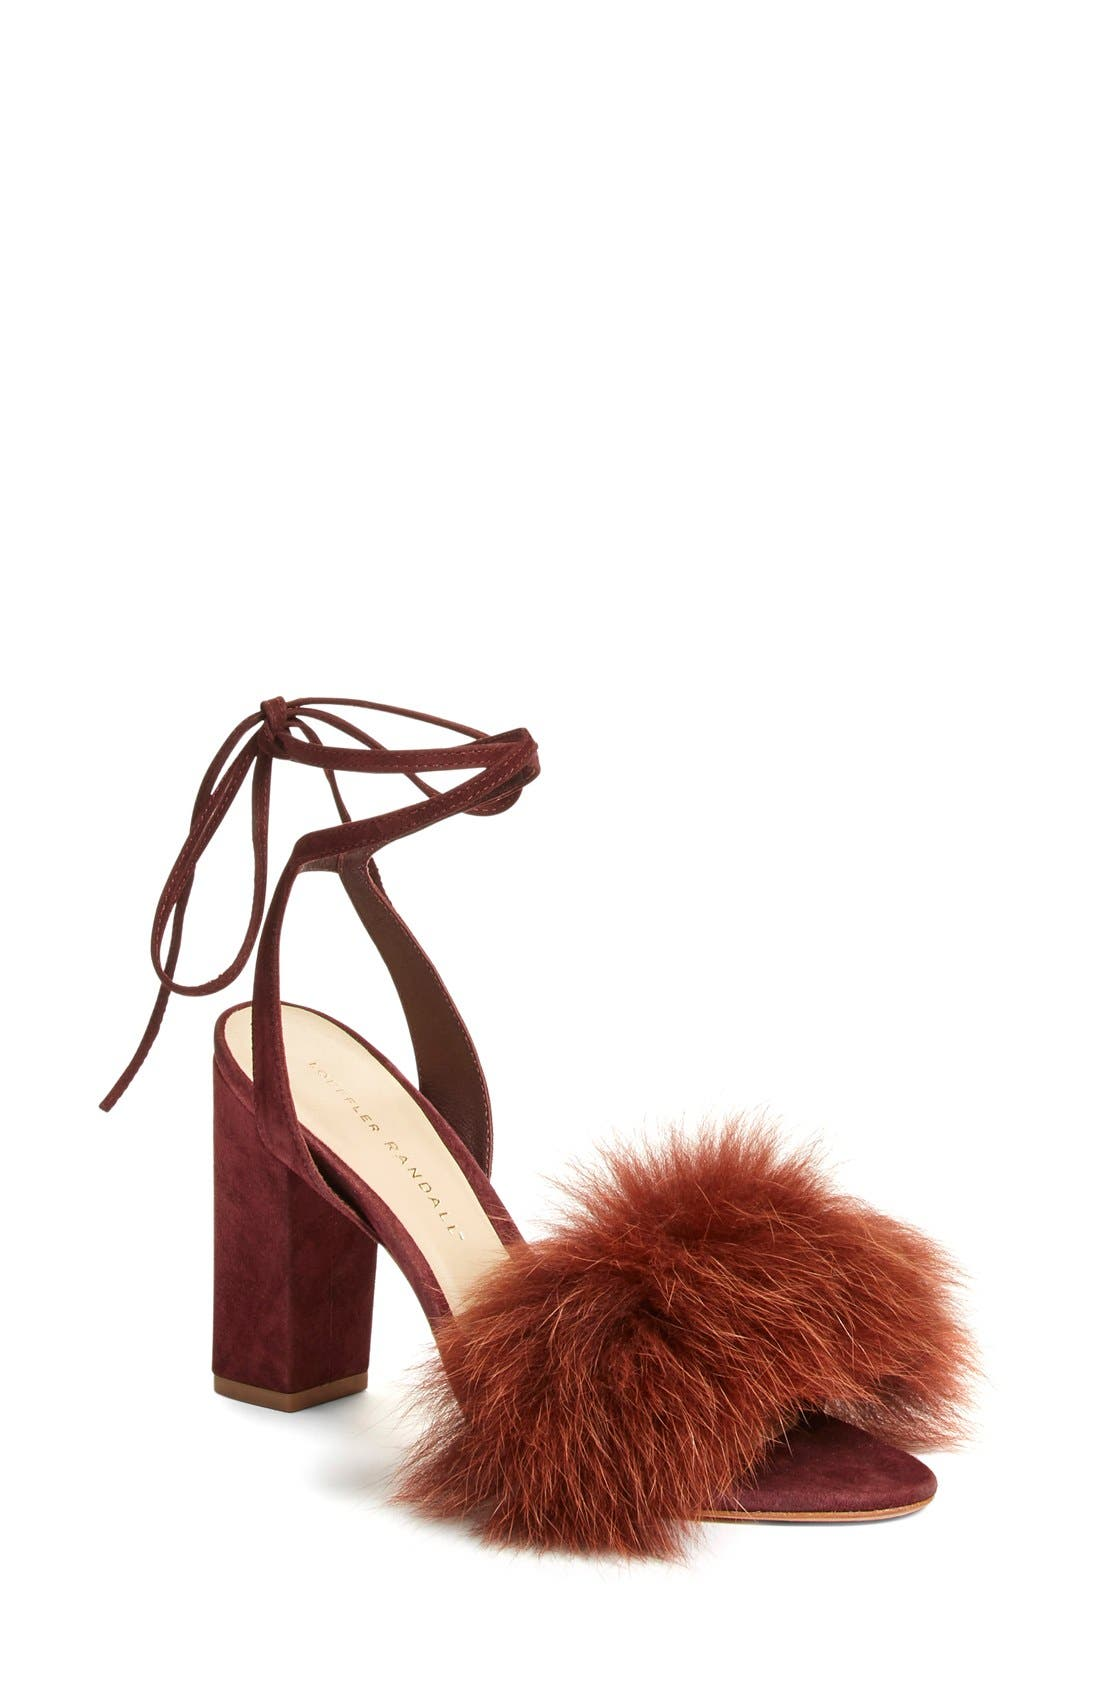 Alternate Image 1 Selected - Loeffler Randall 'Nicolette' Genuine Fox Fur Trim Sandal (Women)